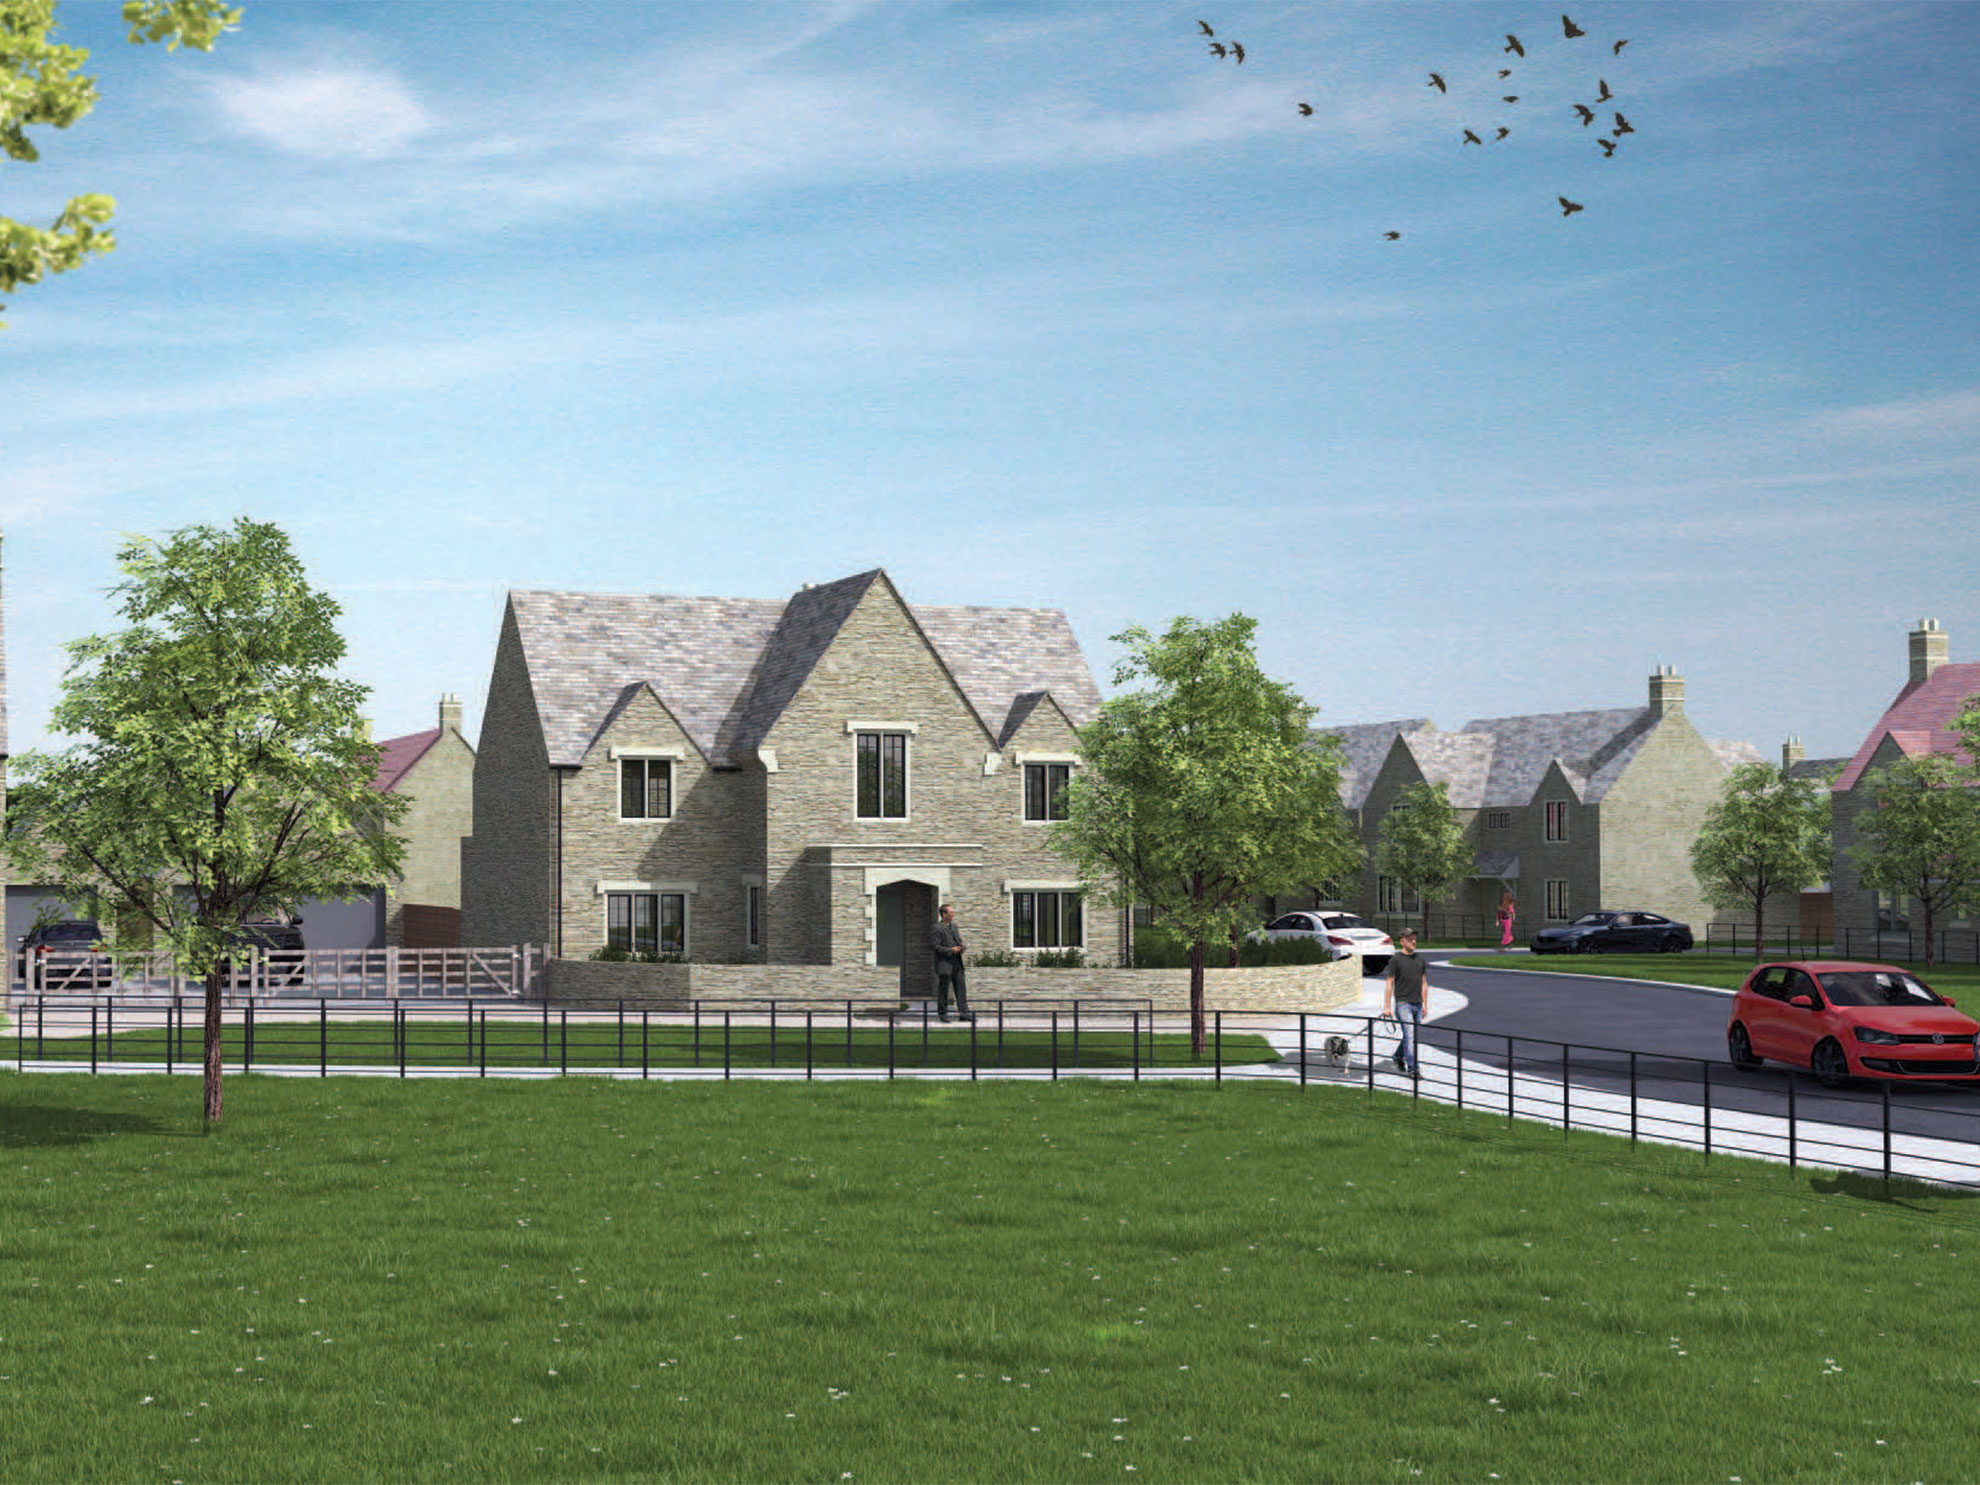 CGI of a new build development from Beech Grove Homes.